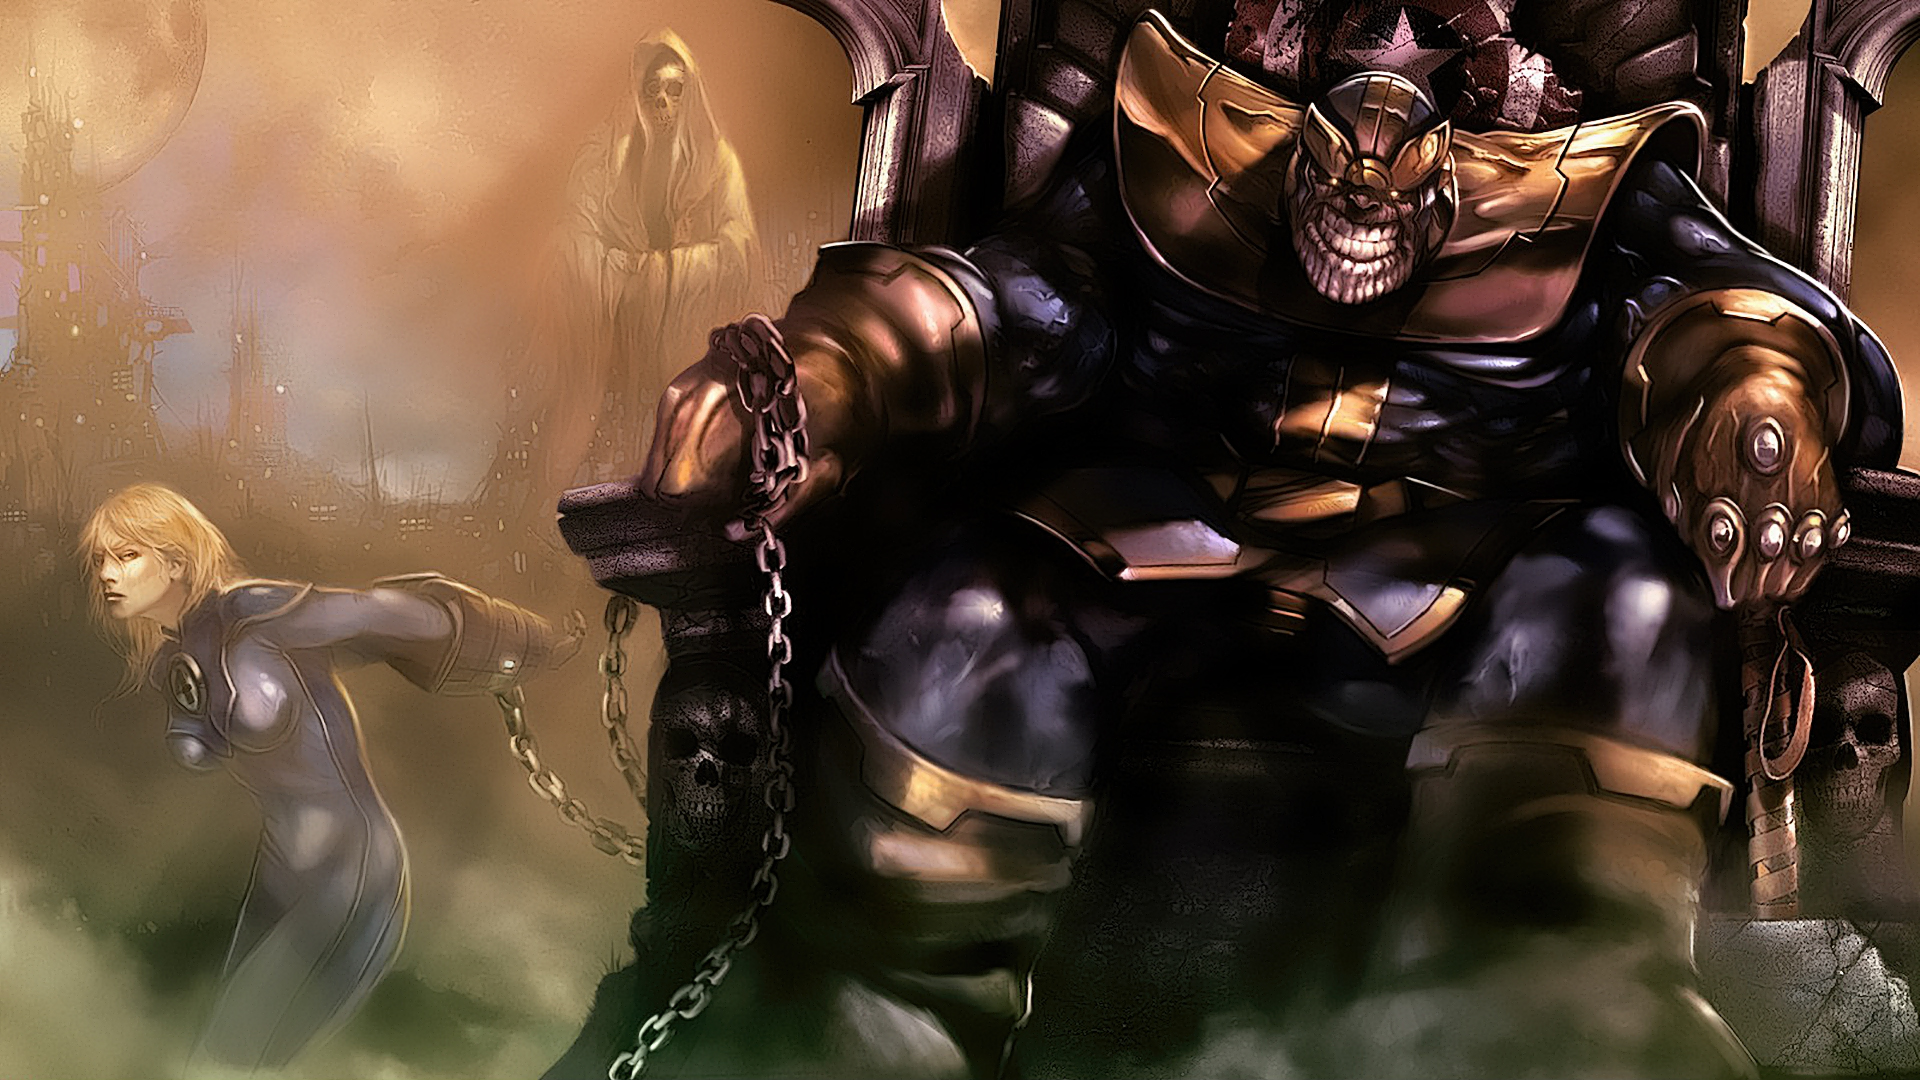 Thanos Hd Wallpaper: Background Images - Wallpaper Abyss